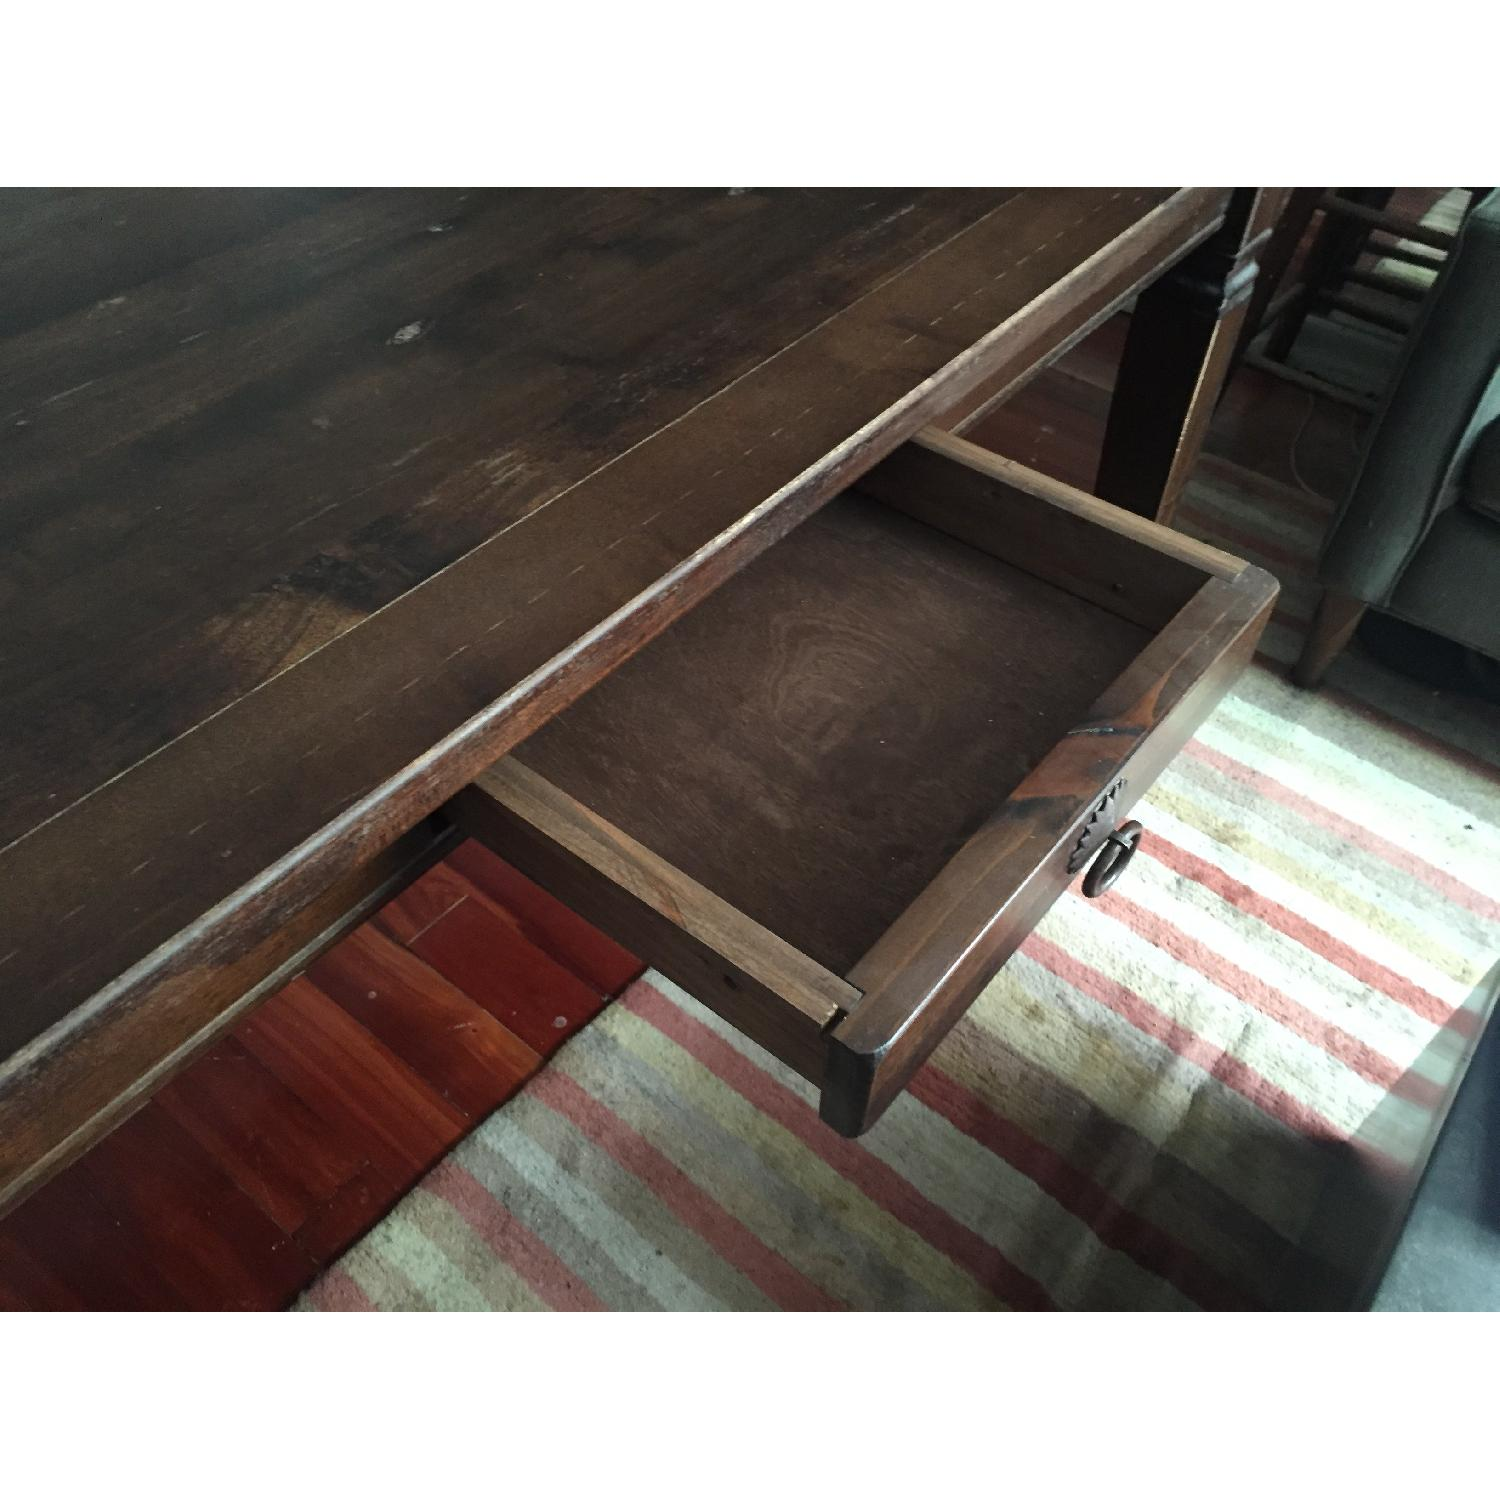 Dark Stained Wood Farm Table w/ 4 Chairs - image-4